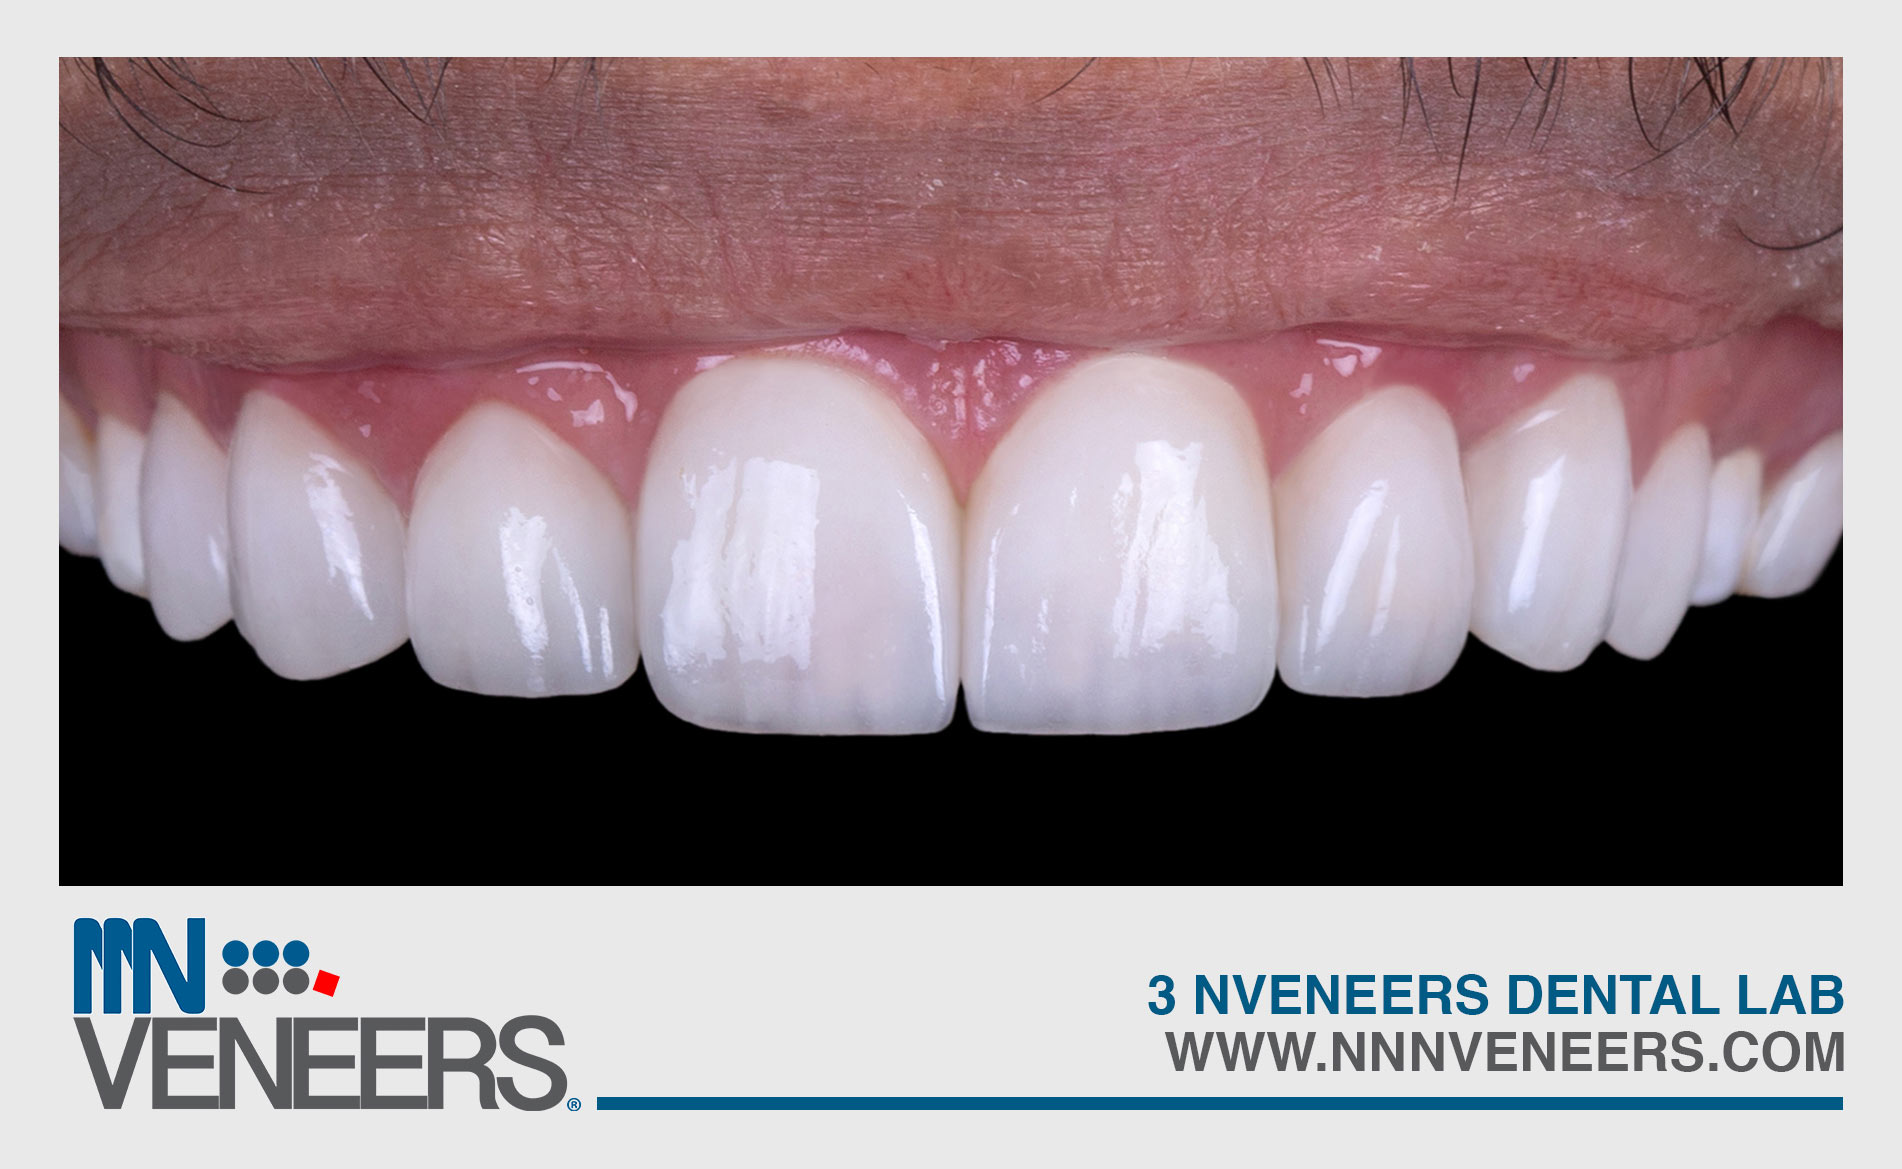 man teeth closeup after nnnveneers dentist